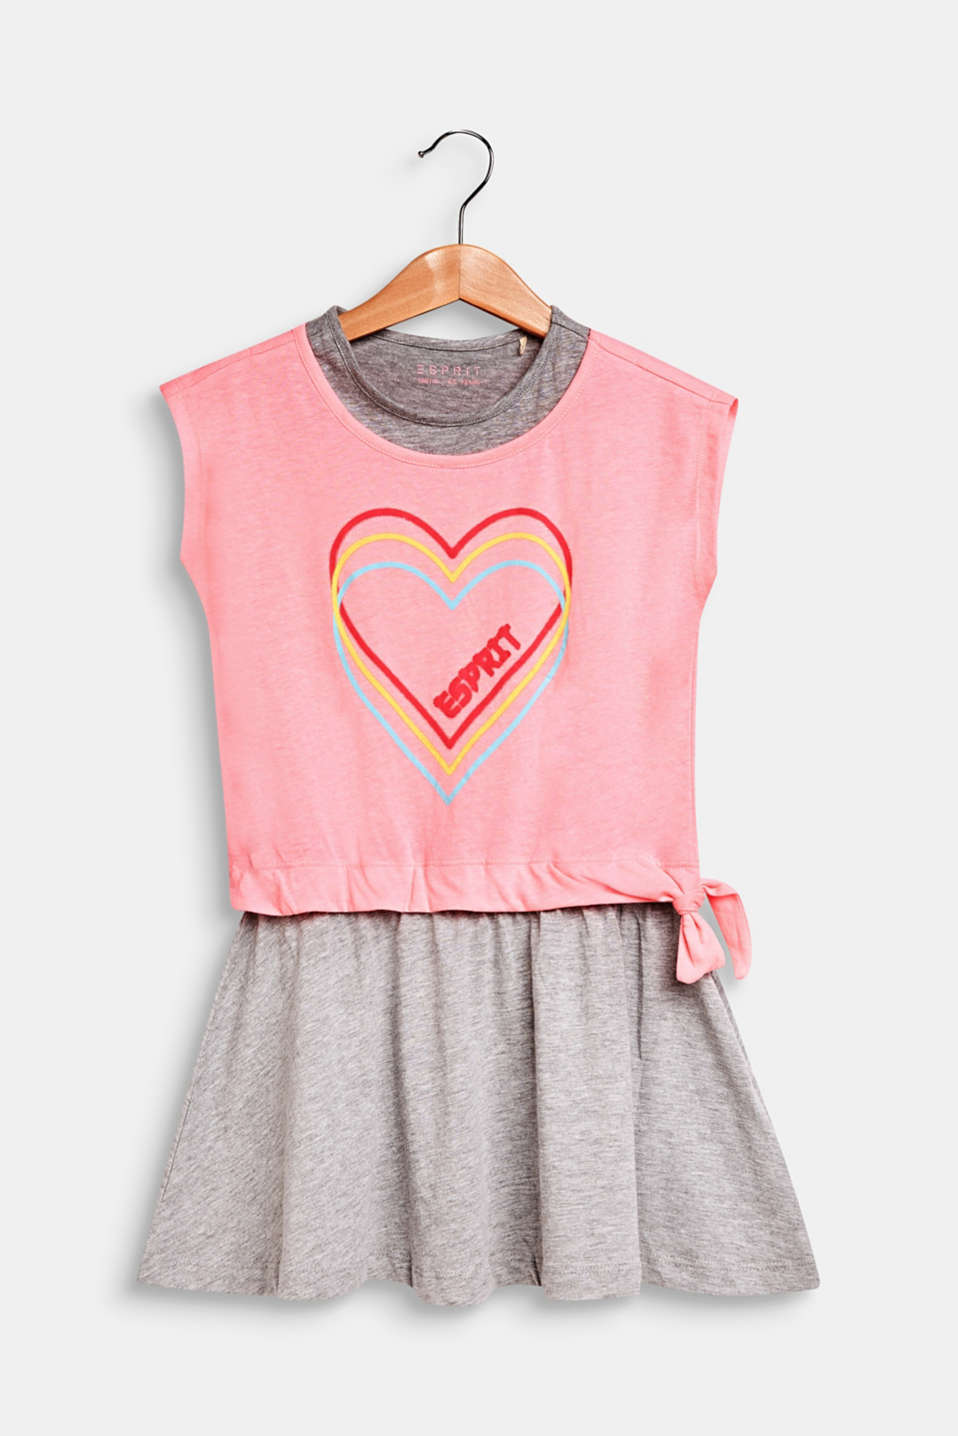 Layered-effect dress with a heart print